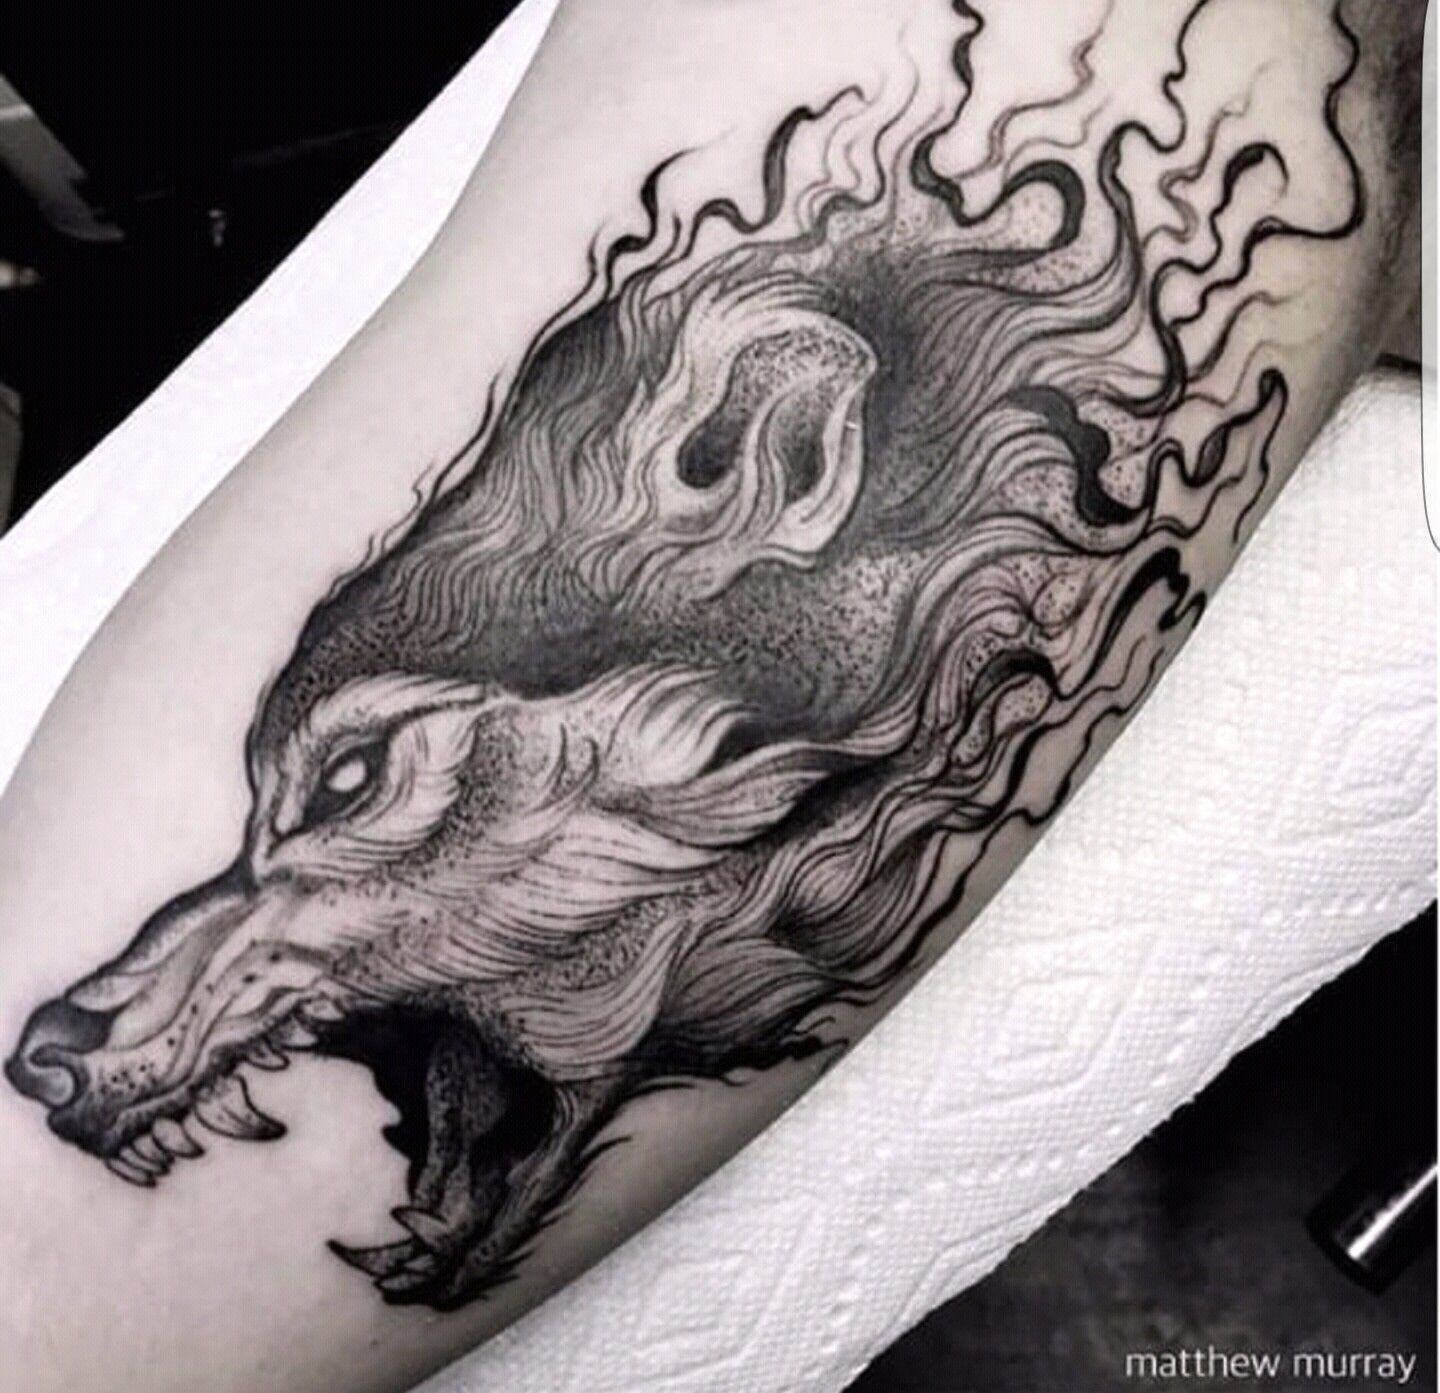 Wolftattoo Tattoo Tattooidea Tattoosketch Tattoodesi Tatto Temporary Sticker Hb577 51w 79